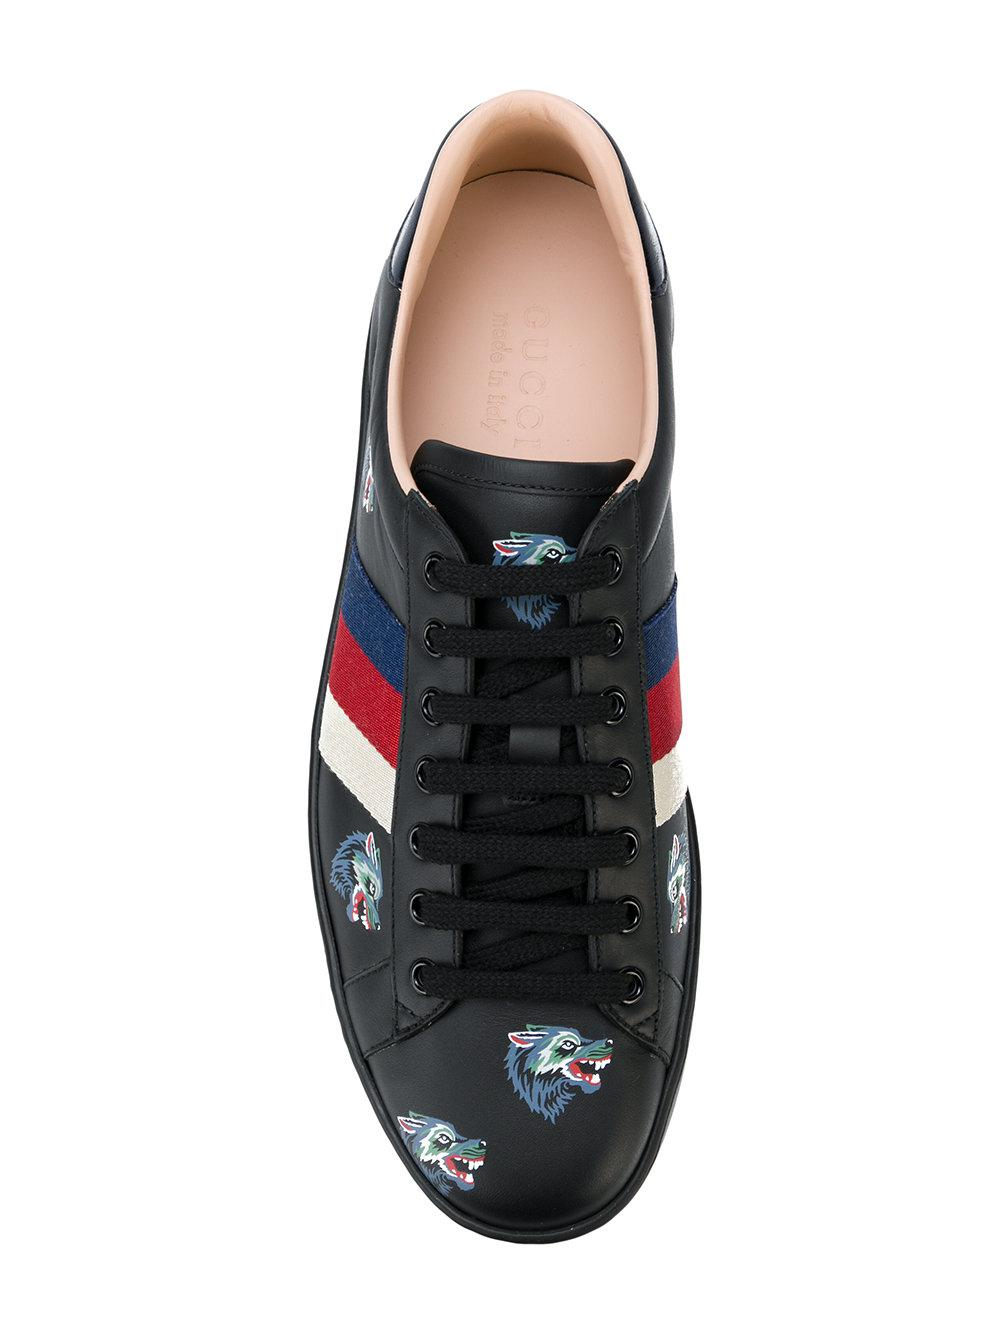 e66f18d7711 Lyst - Gucci Ace With Wolves Print Sneakers in Black for Men